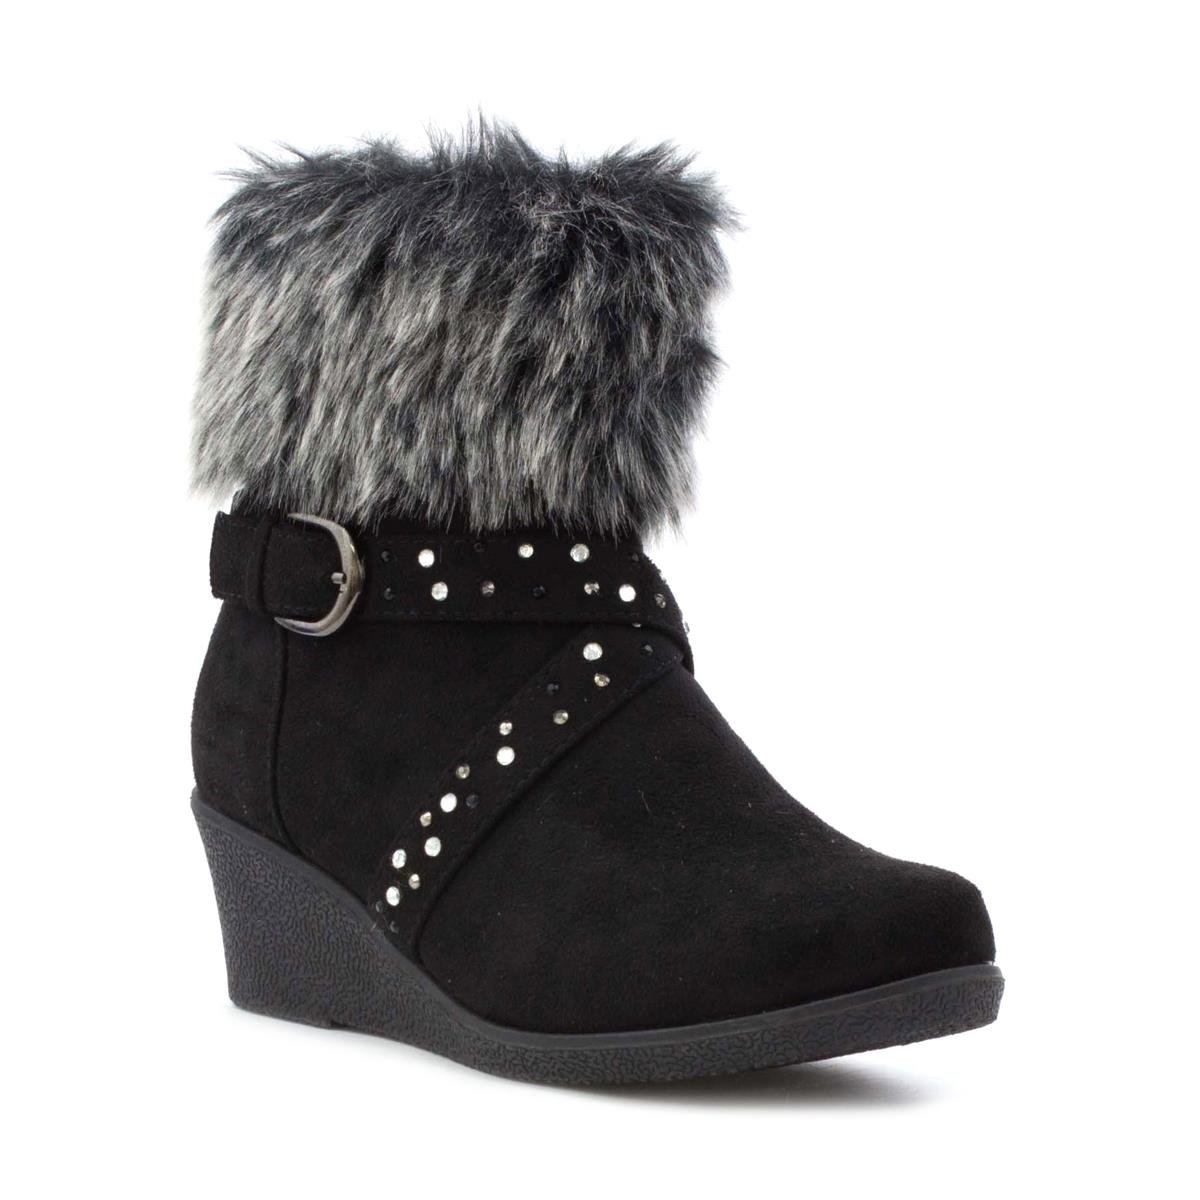 2019 year look- Lilley Womens Black Buckle Detail Ankle Boot-18640